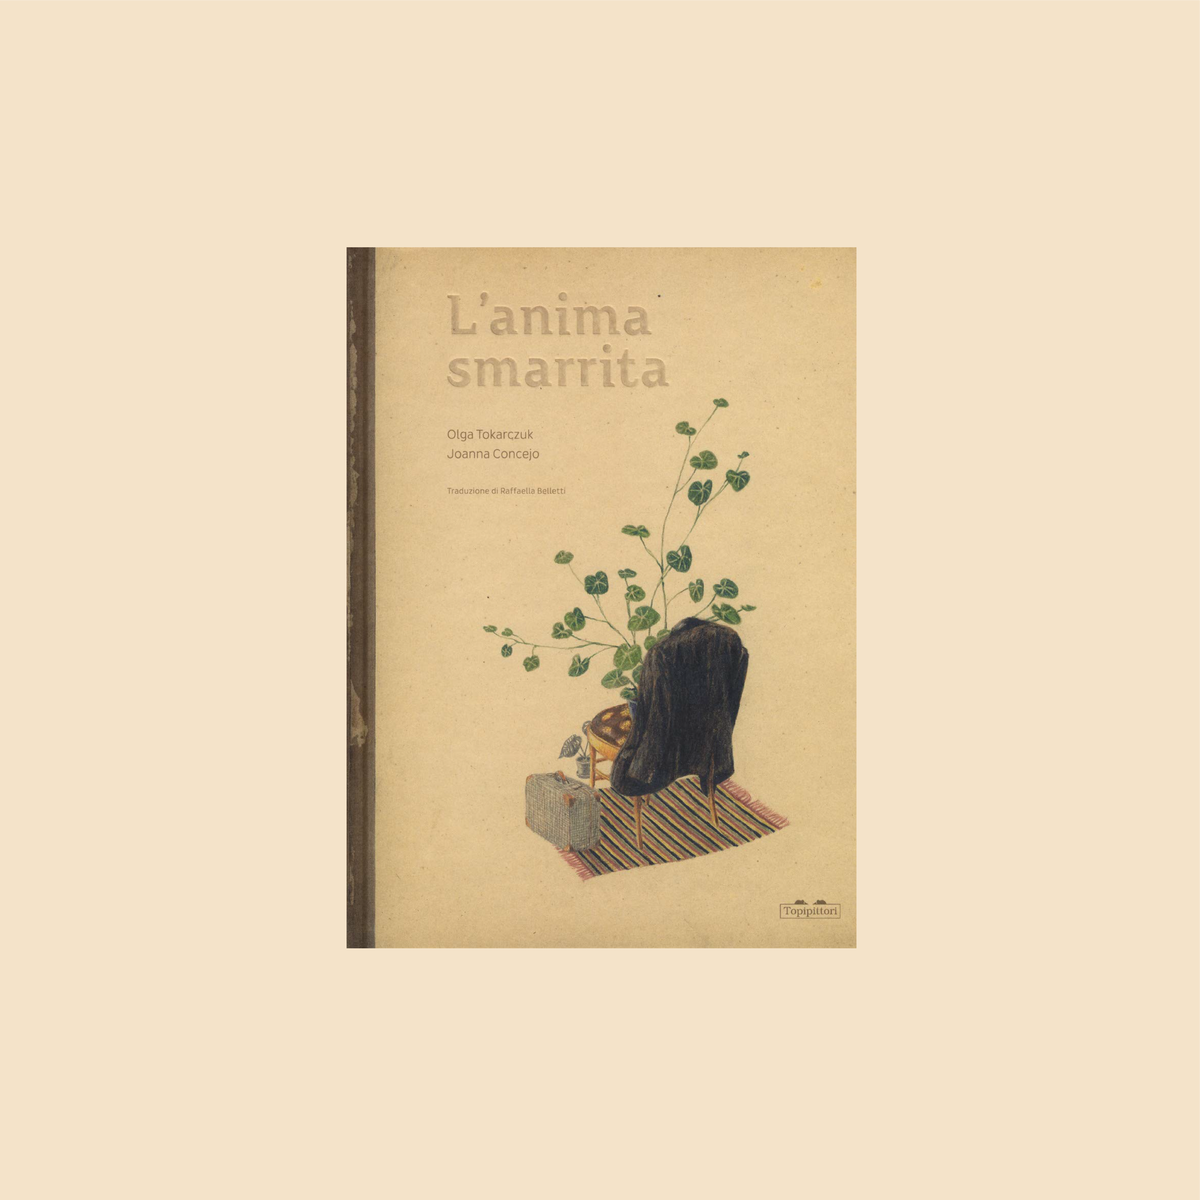 Image of L'anima smarrita